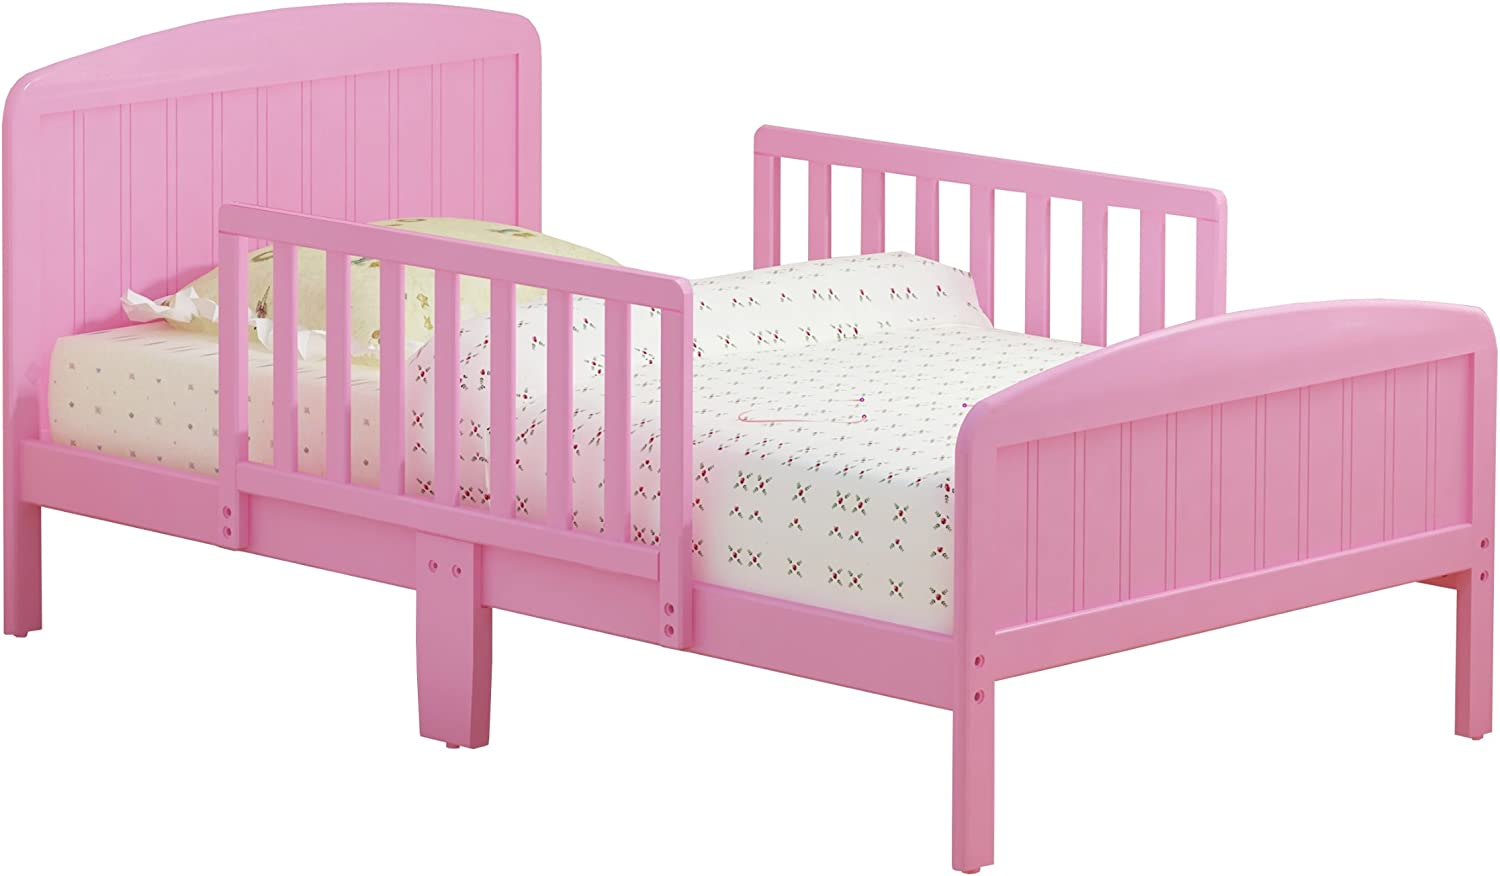 Rack Furniture RR5010PP Harrisburg Toddler Bed Perfect Pink